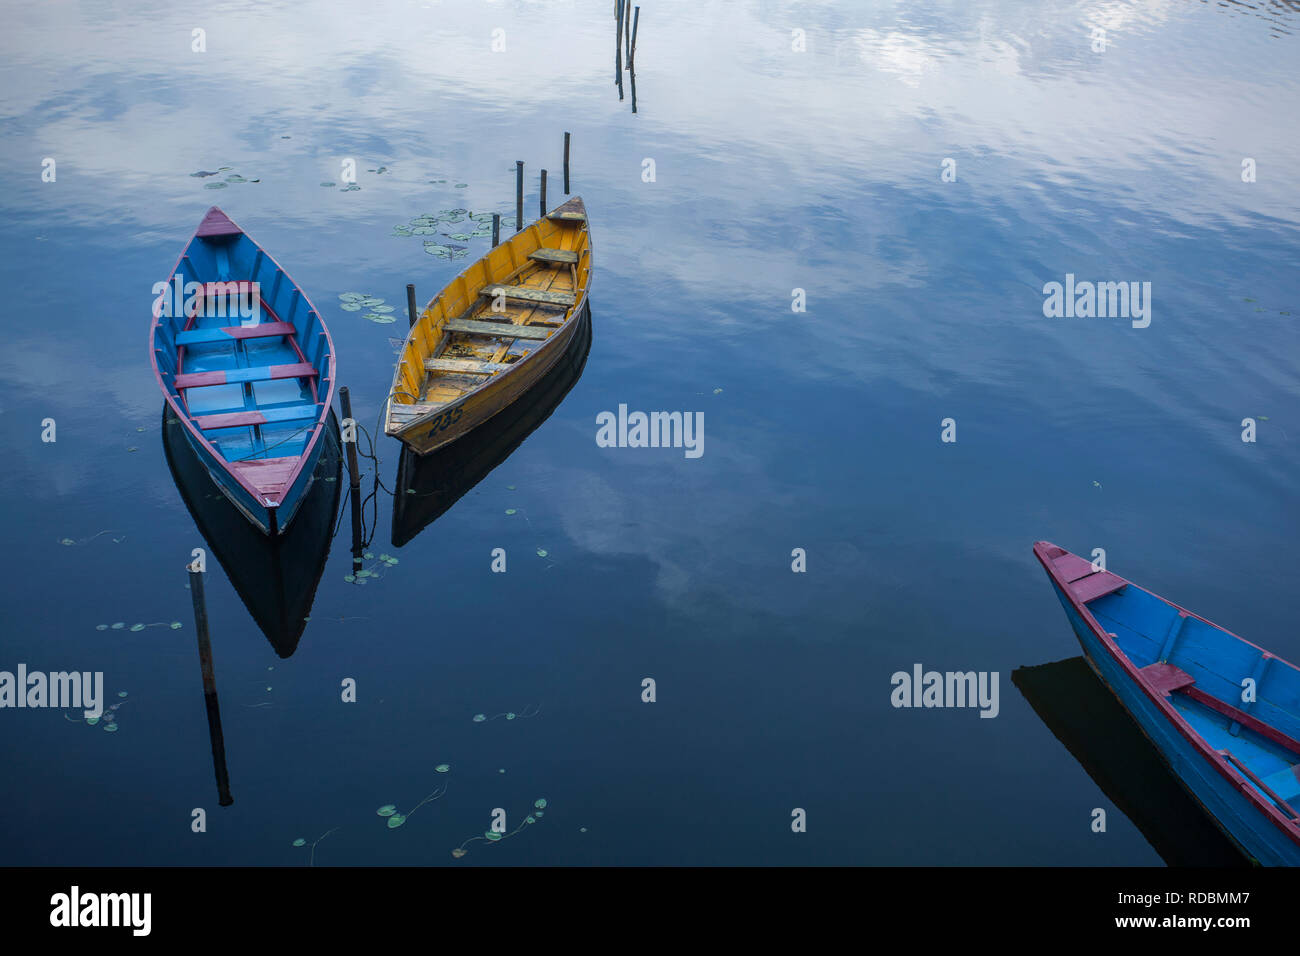 Boats in Begnas lake in Pokhara, Nepal. - Stock Image